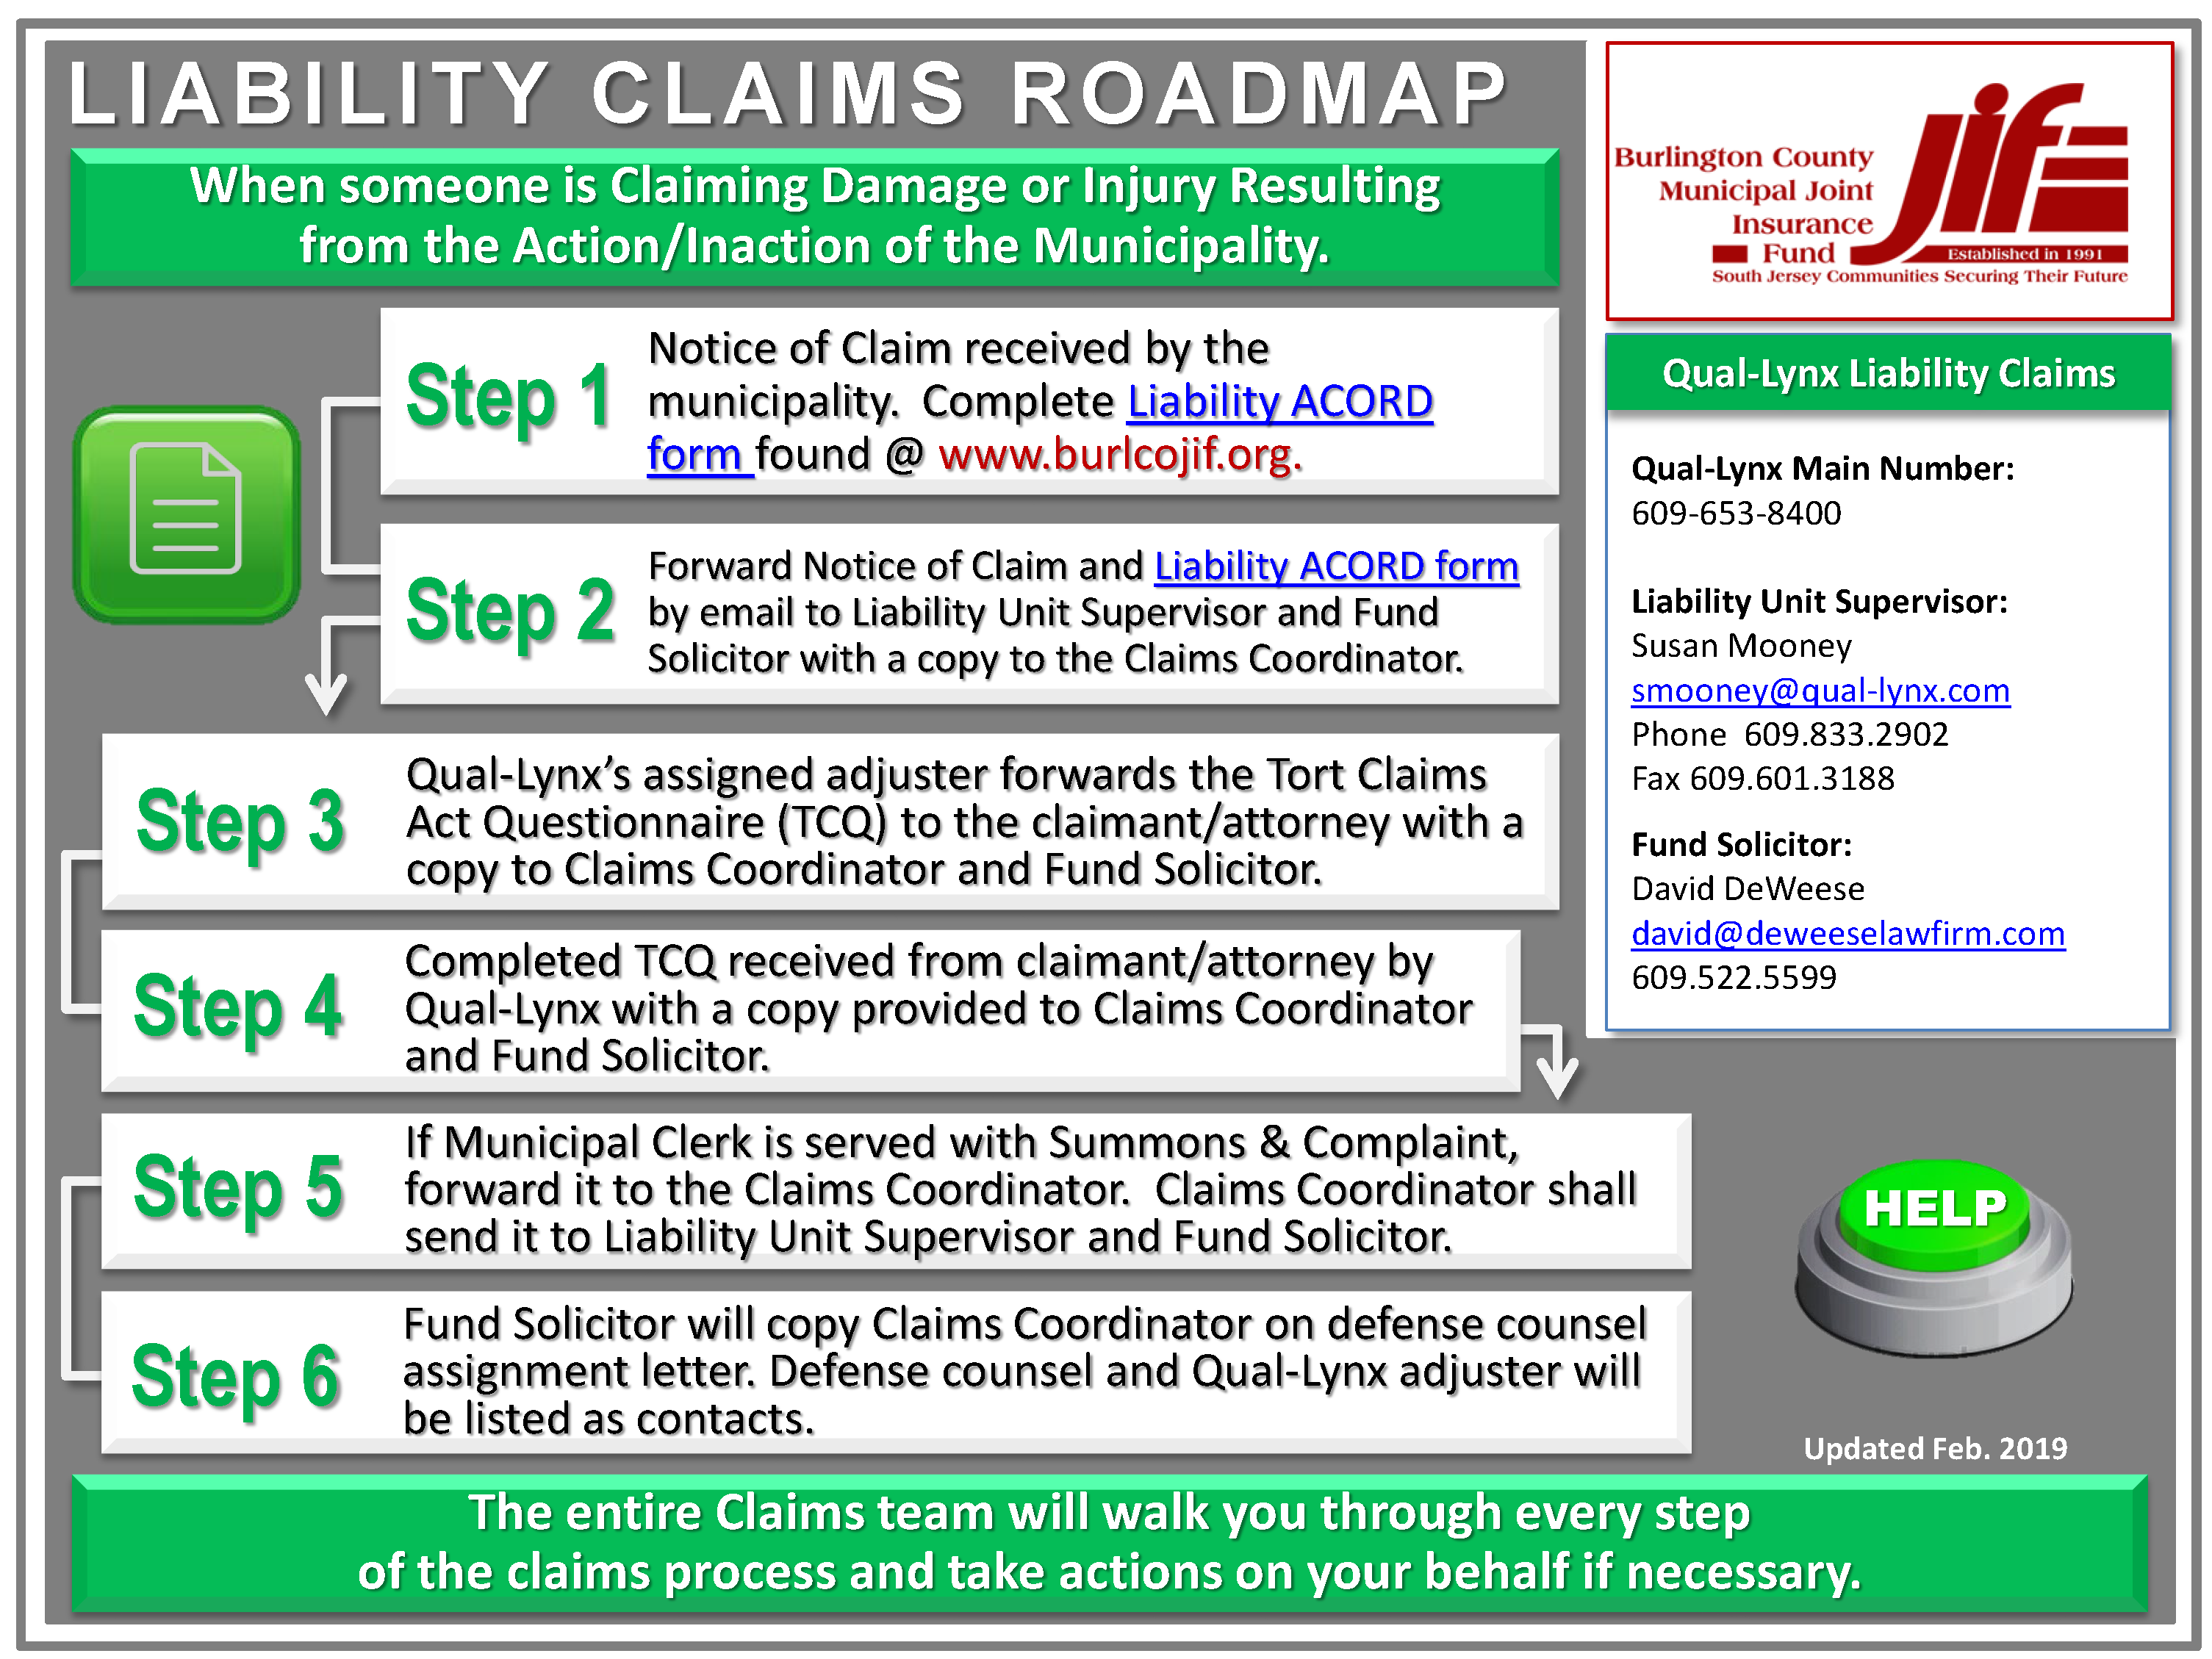 Liability Claims Roadmap